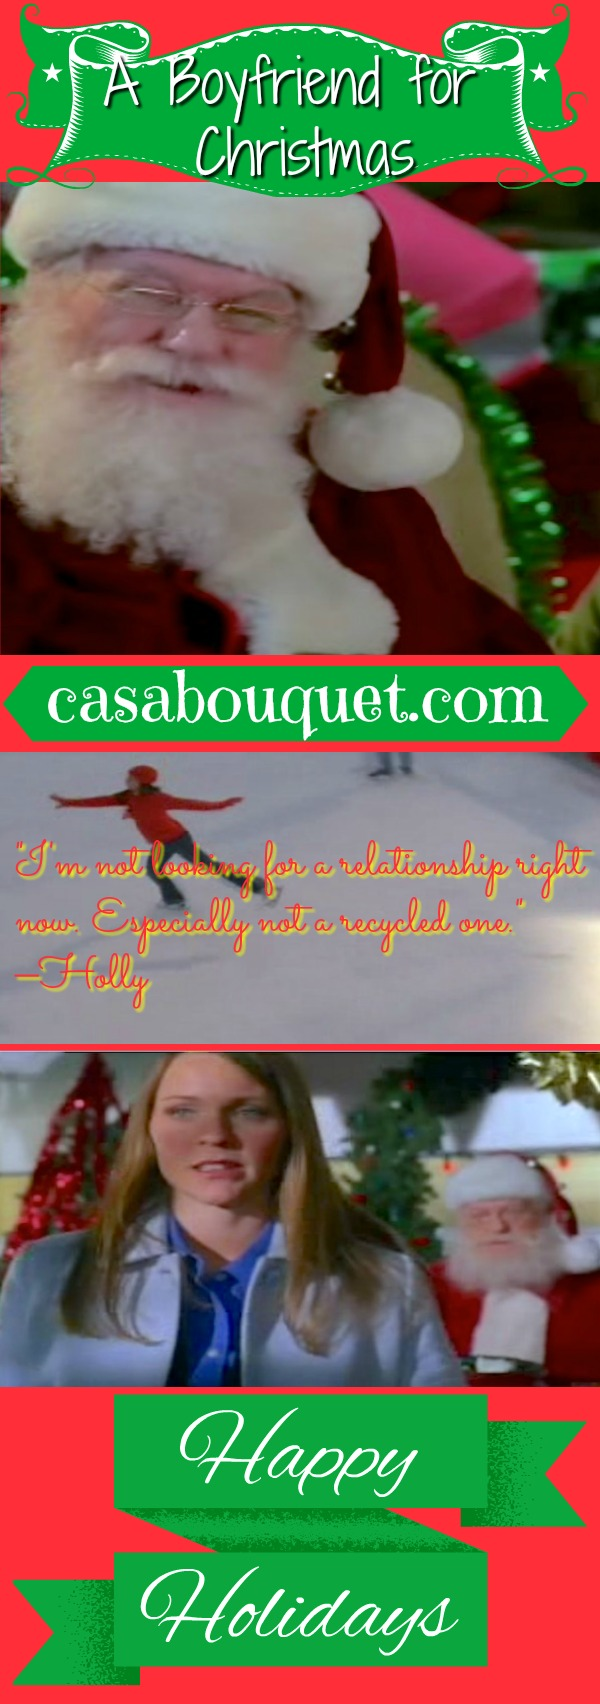 Santa promised Holly a boyfriend 20 years ago. He finally sends her Ryan in this fantasy Christmas story. Lisa's Home Bijou: A Boyfriend for Christmas (2004)